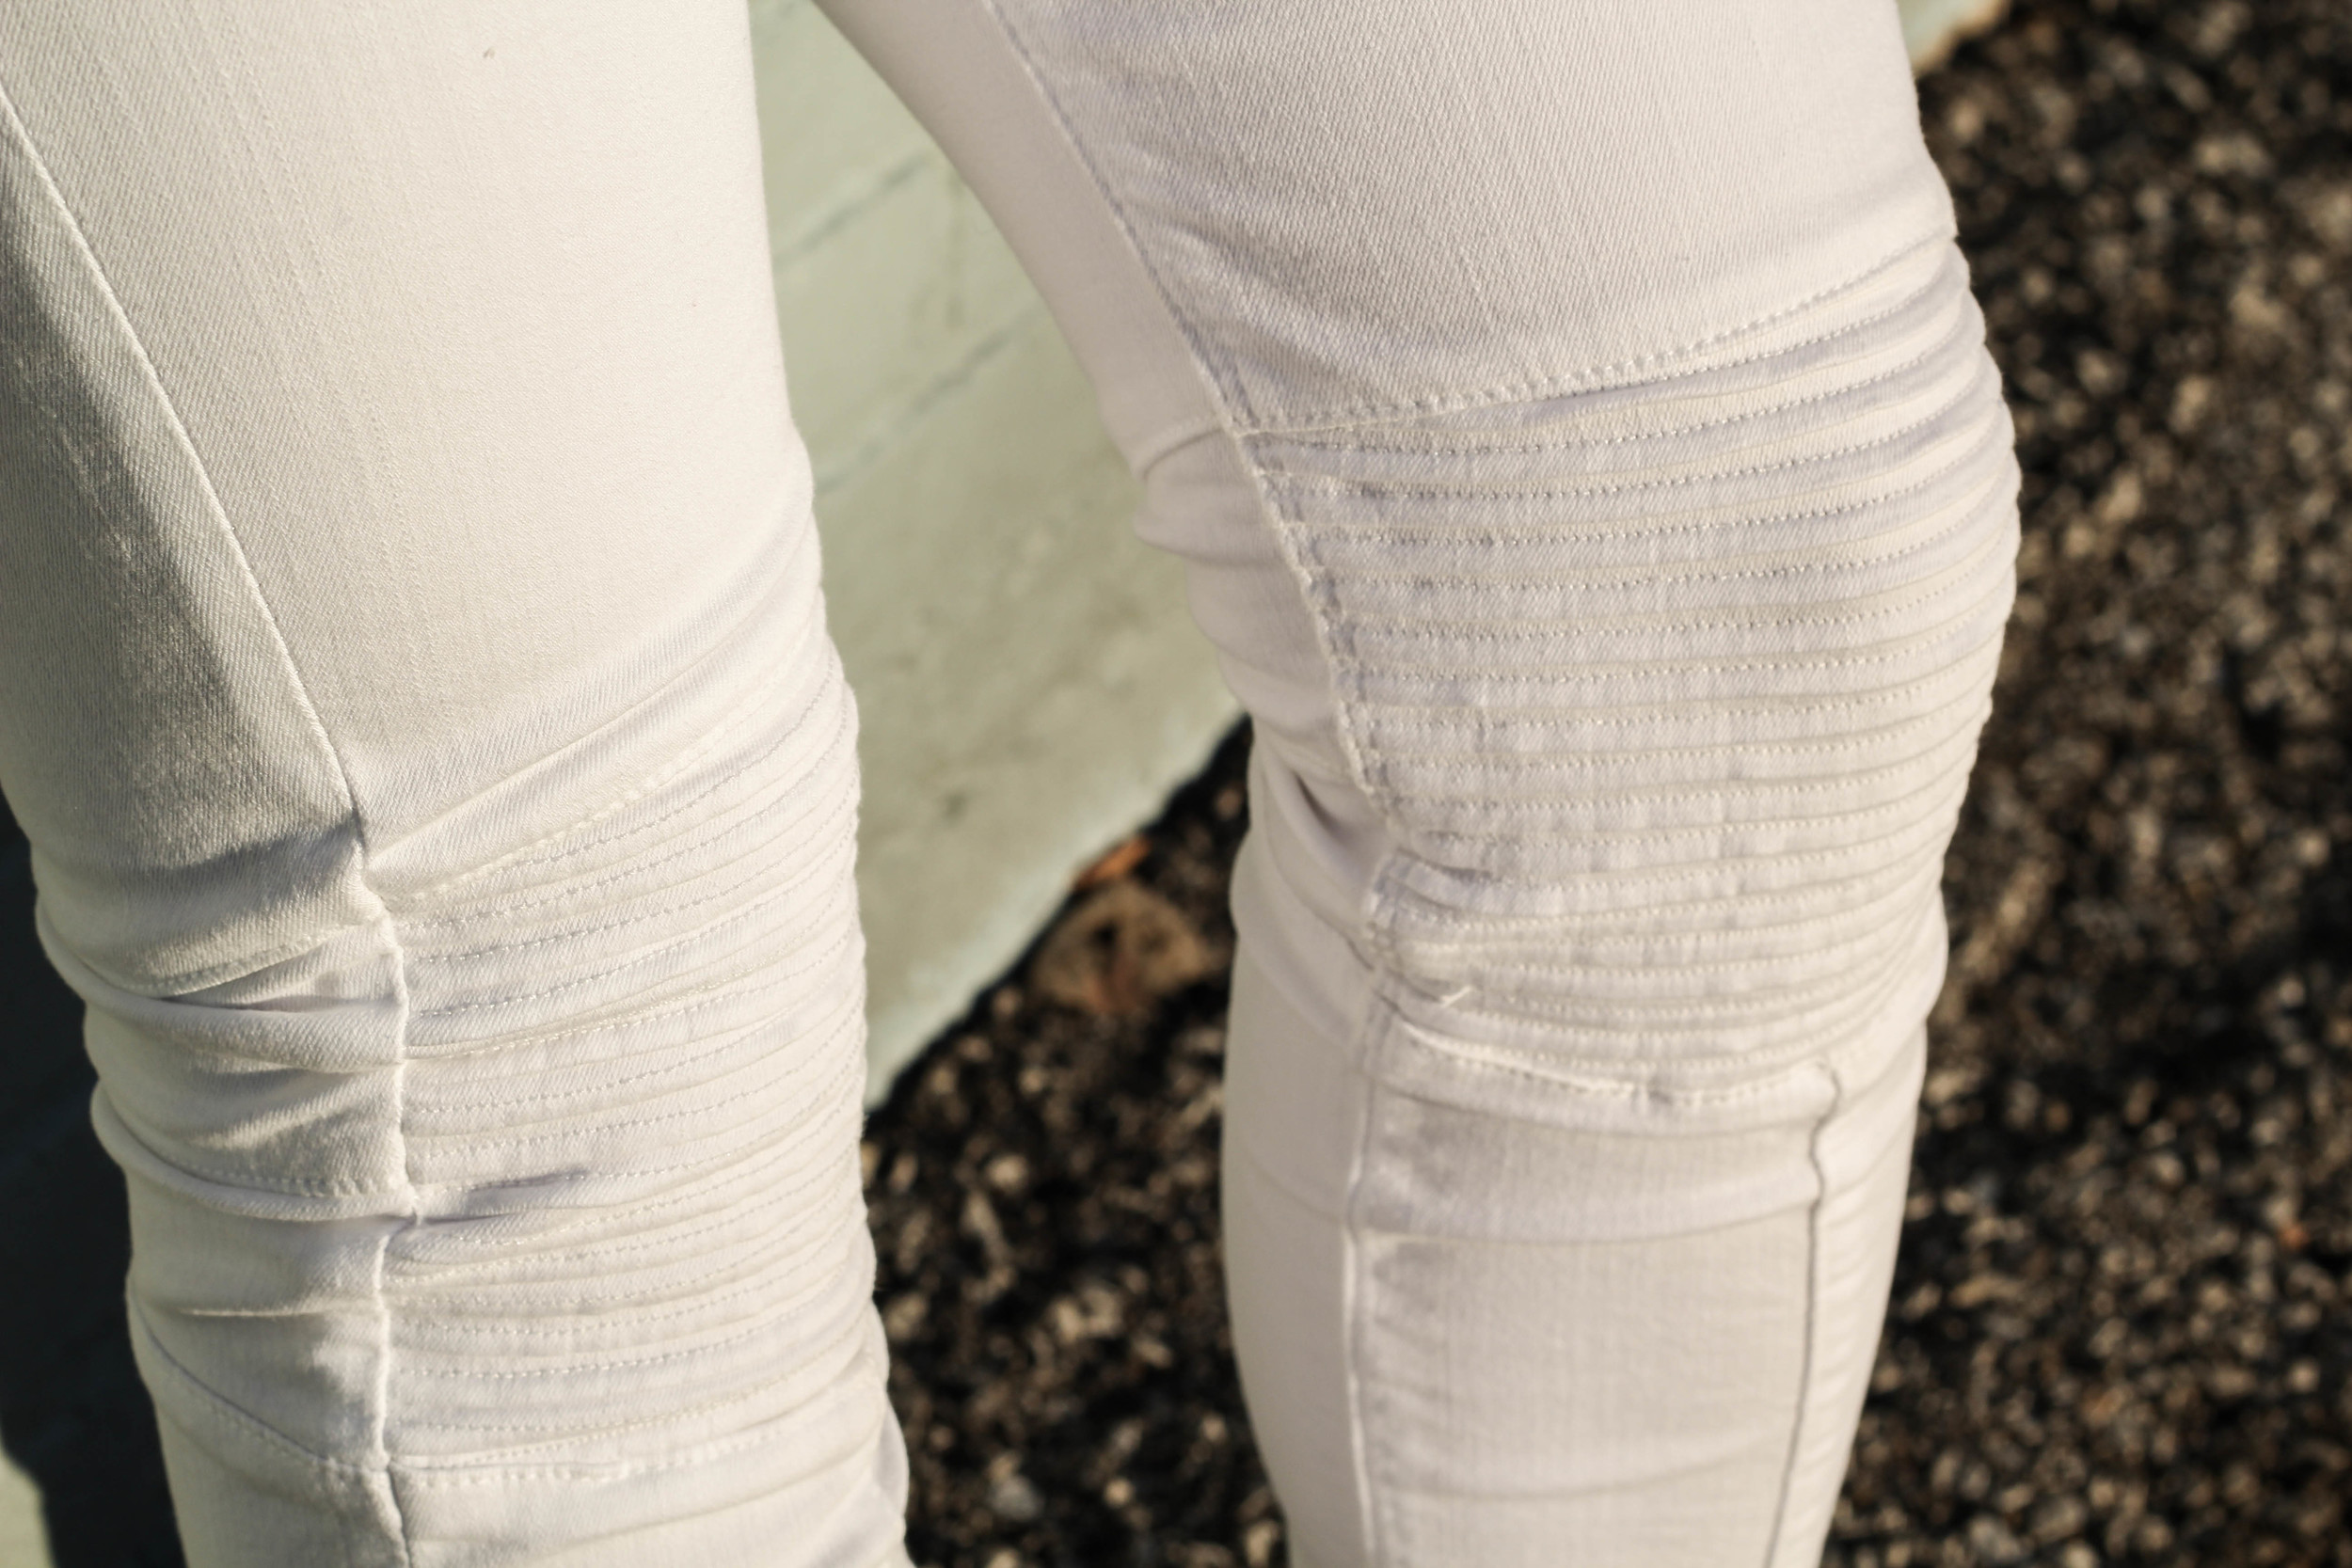 Did I say details yet? This unique knee texture is the very reason I purchased these killer moto jeans. Although its a subtle characteristic of the pants, the ridges still grab your attention. They also add a little more stretch at the knee!